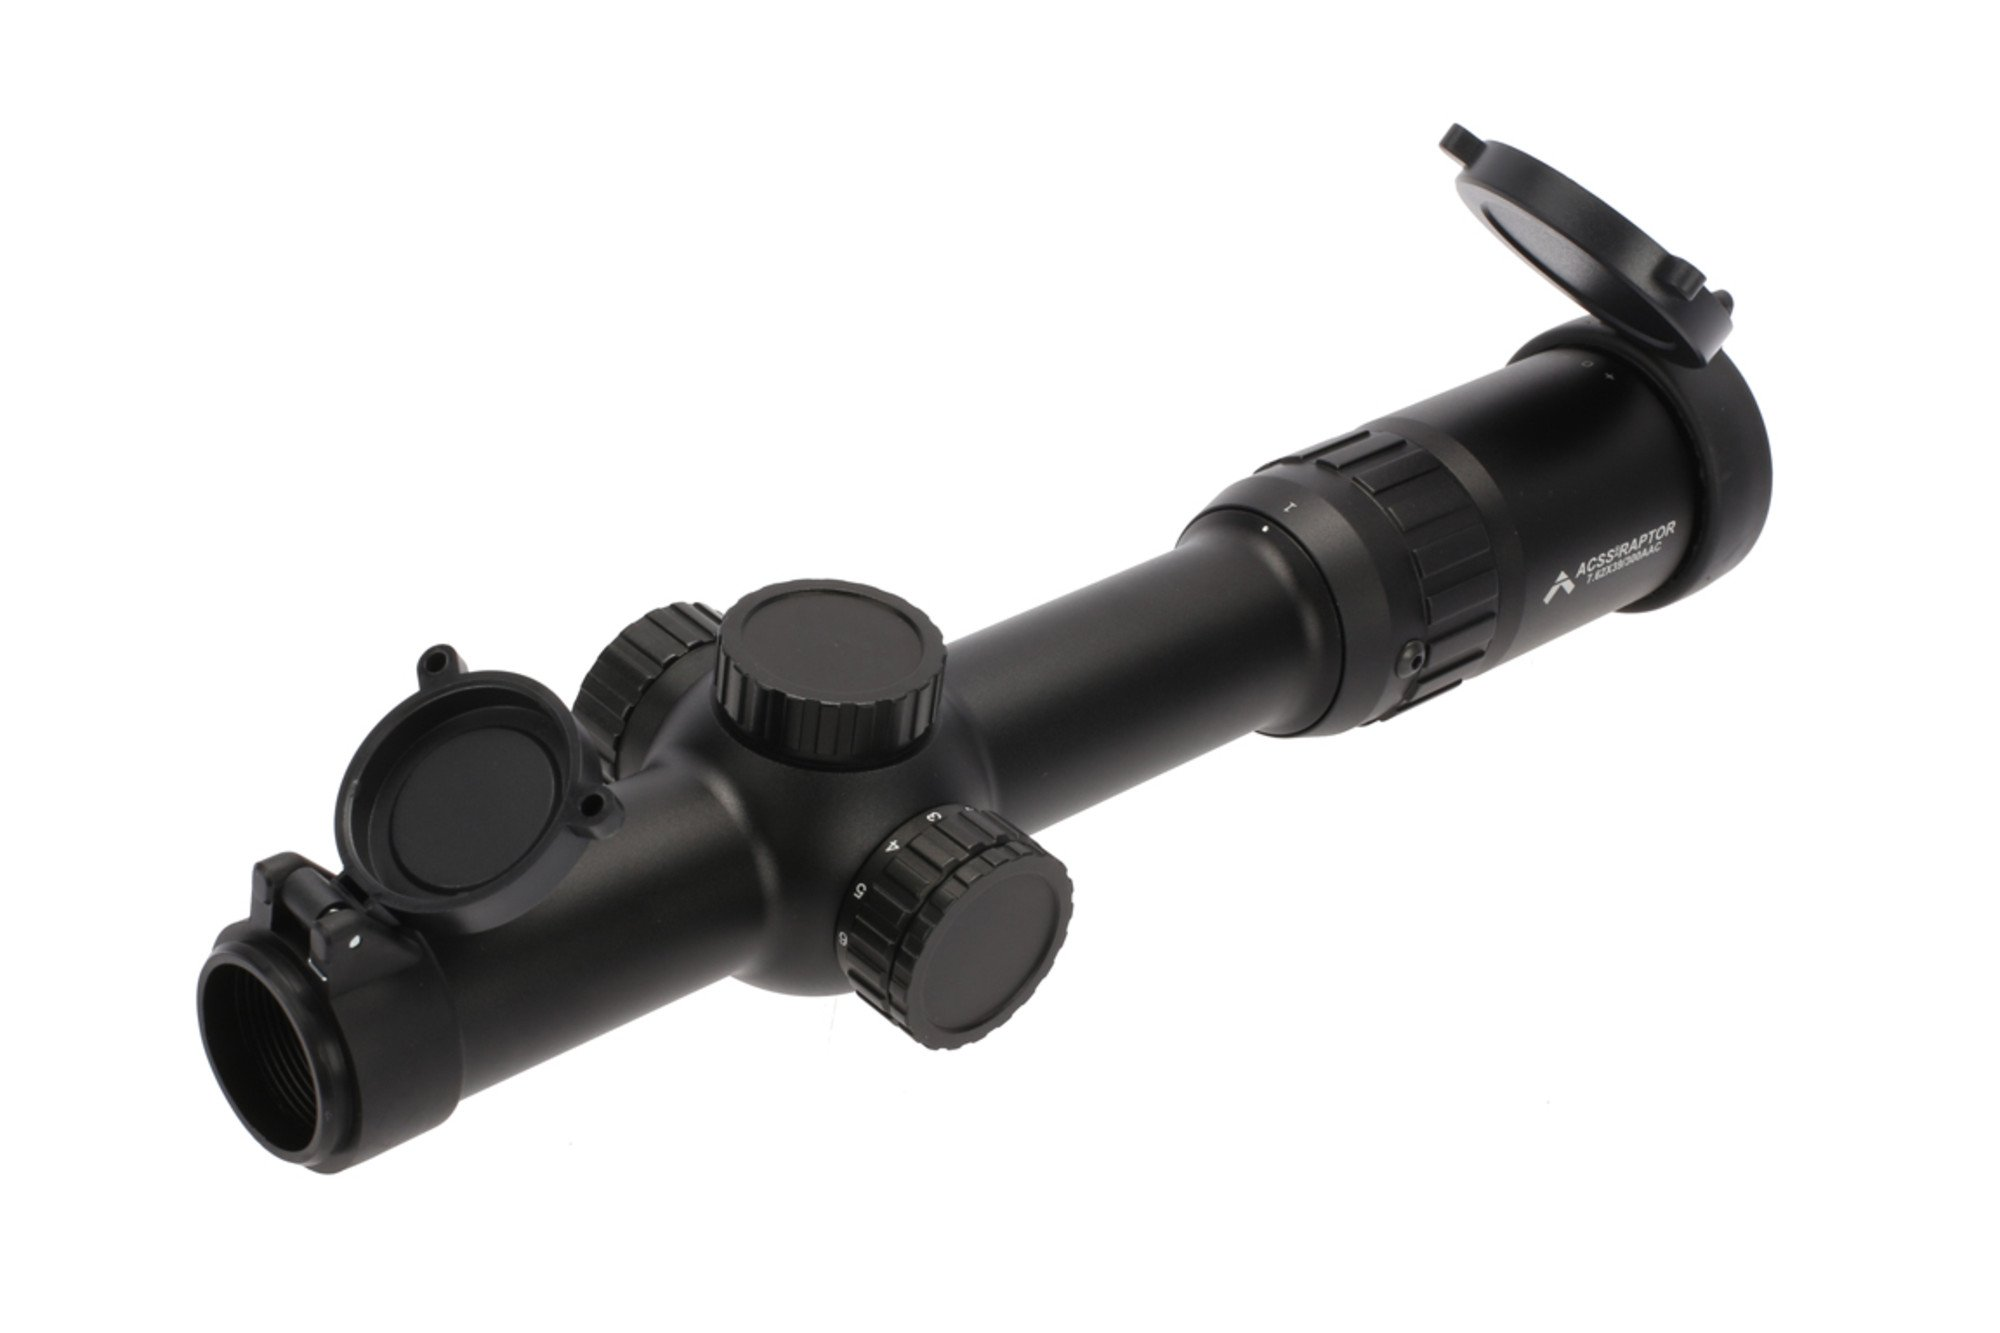 Primary Arms SLx6 1-6x24mm FFP Rifle Scope - Illuminated ACSS-RAPTOR-300BO/7.62x39 by Primary Arms